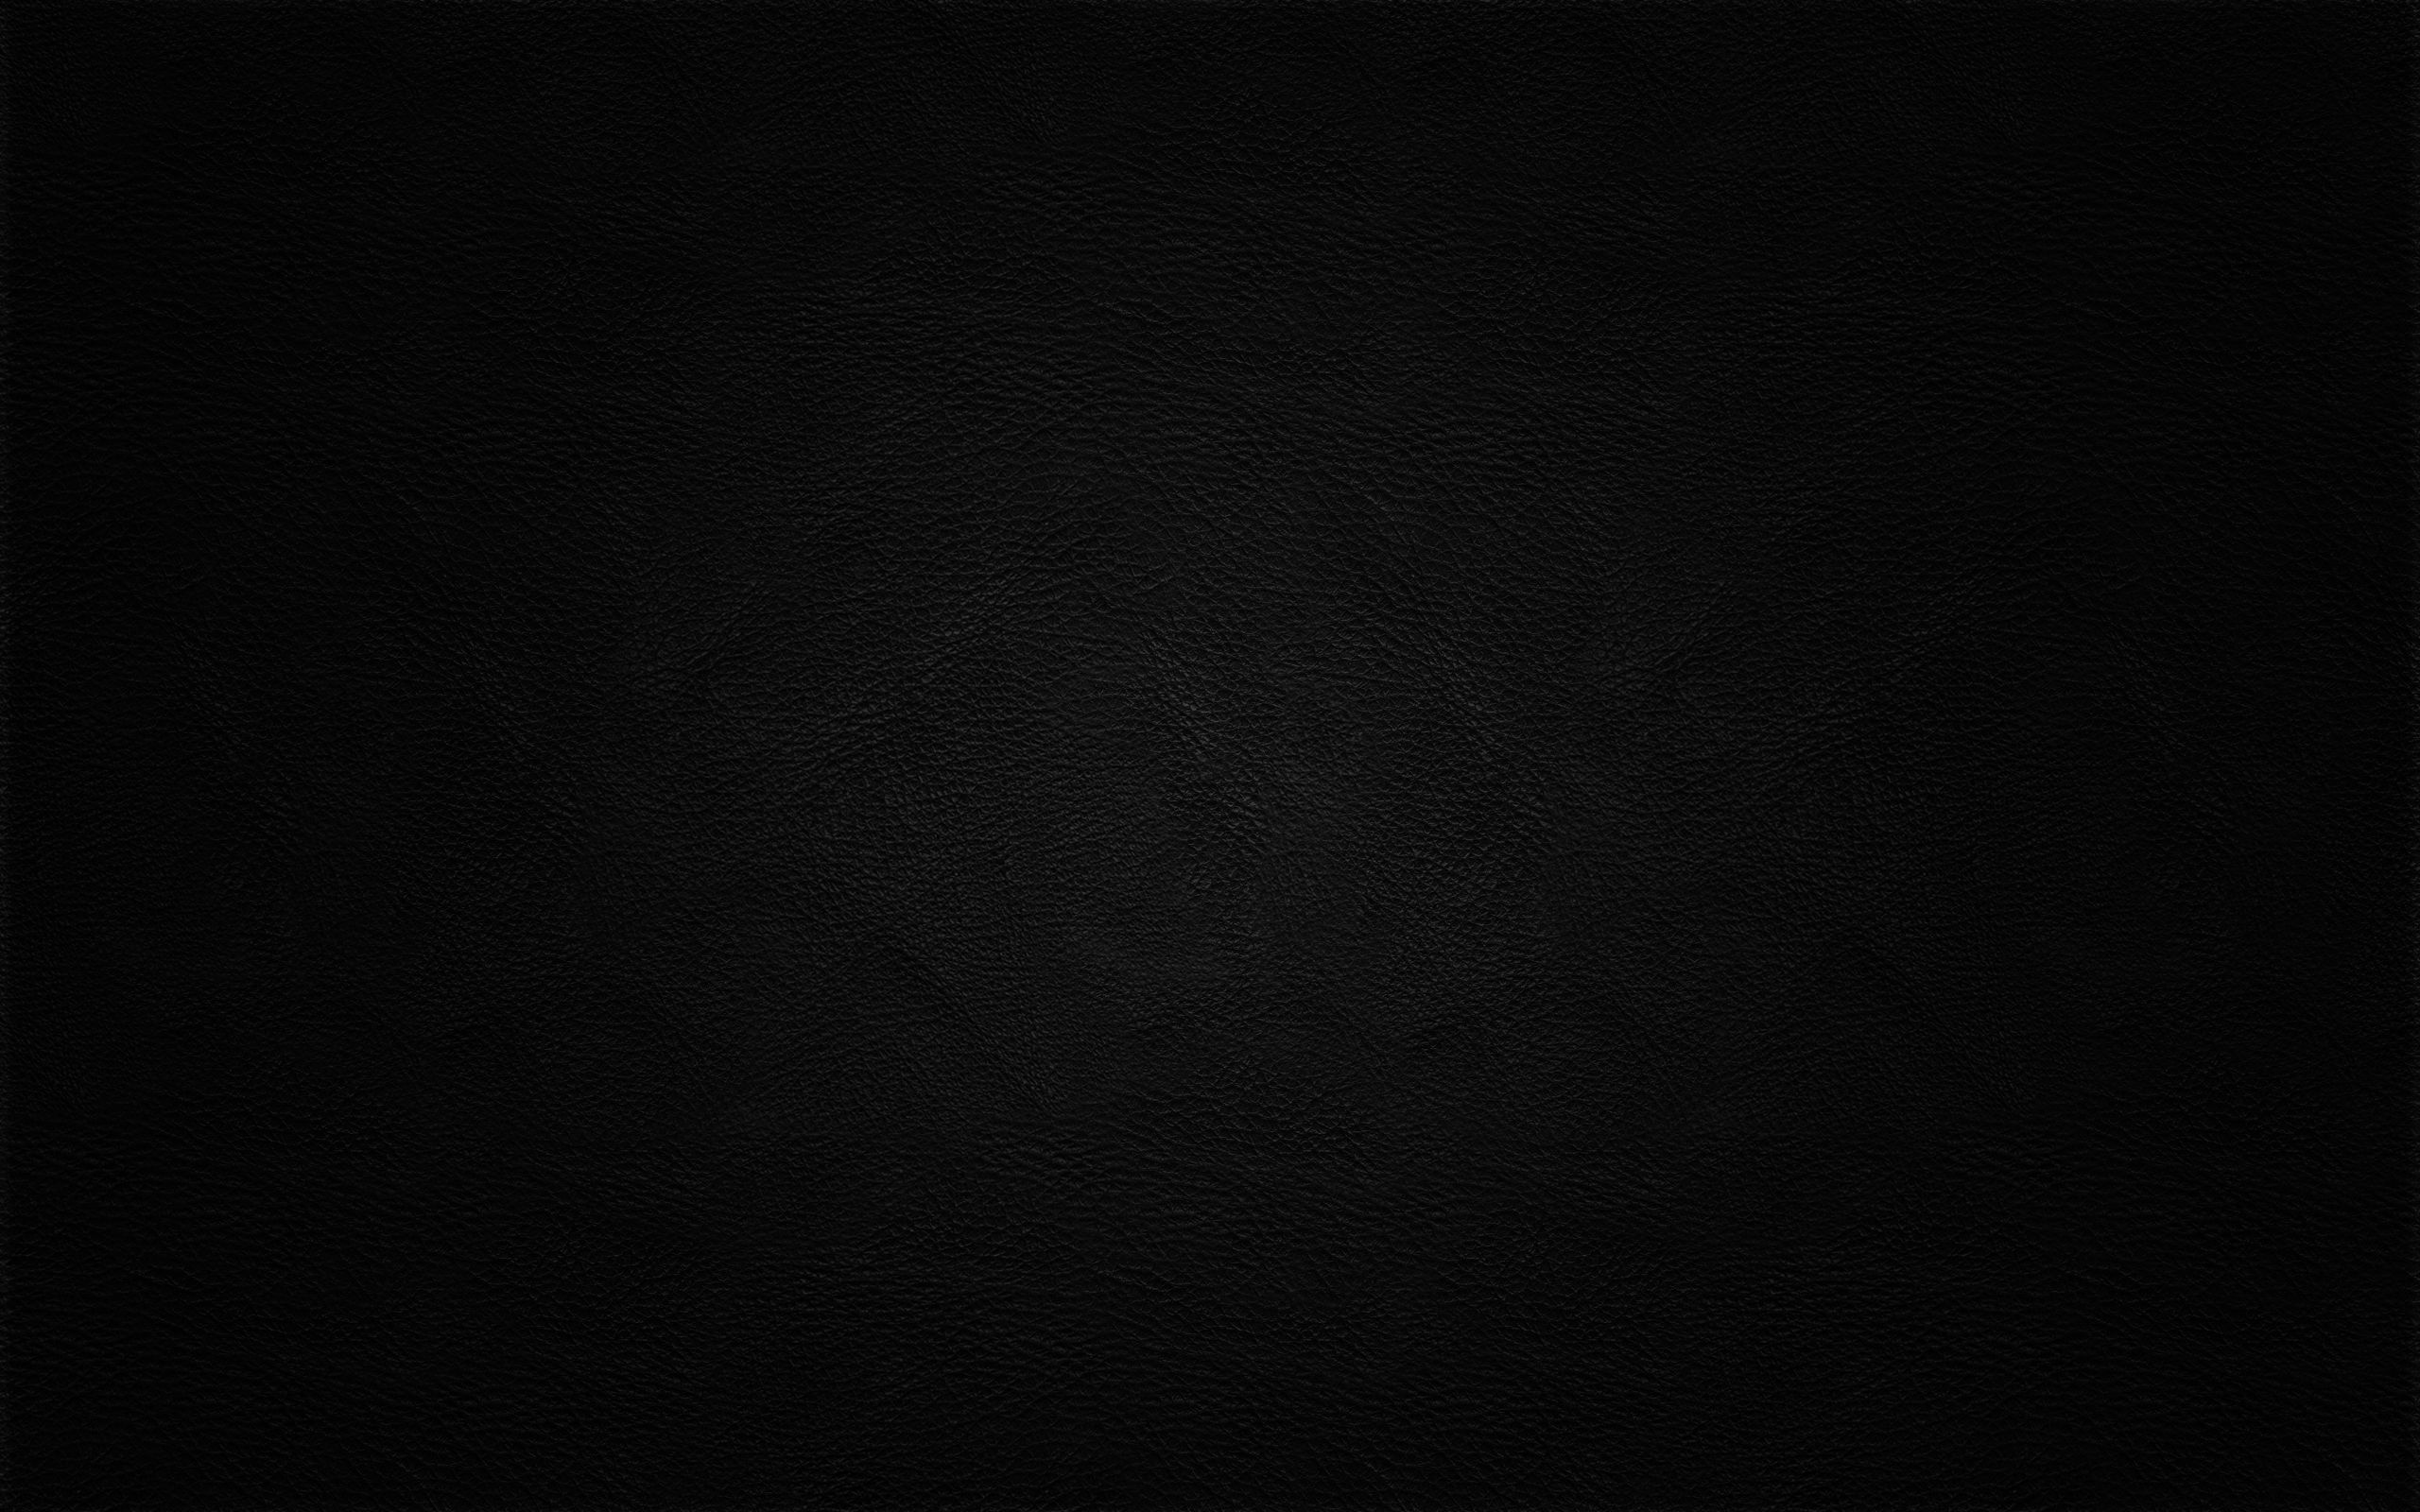 Black Tablet Wallpaper